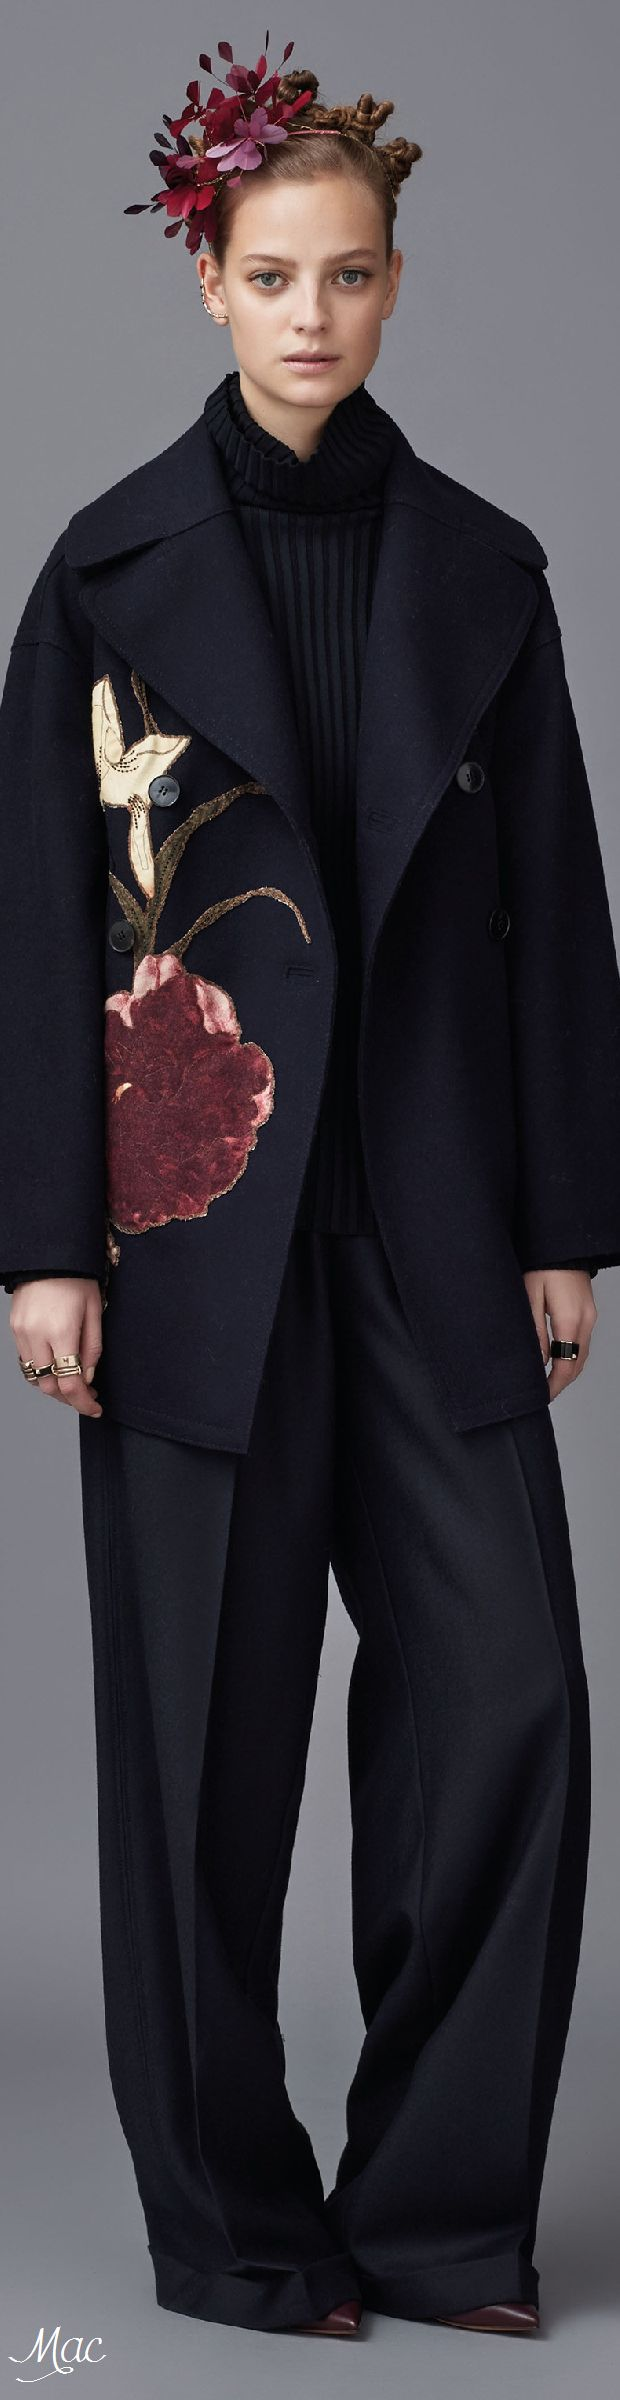 There Is a Ton of Wild Stuff Happening in Valentino's Pre-Fall Collection